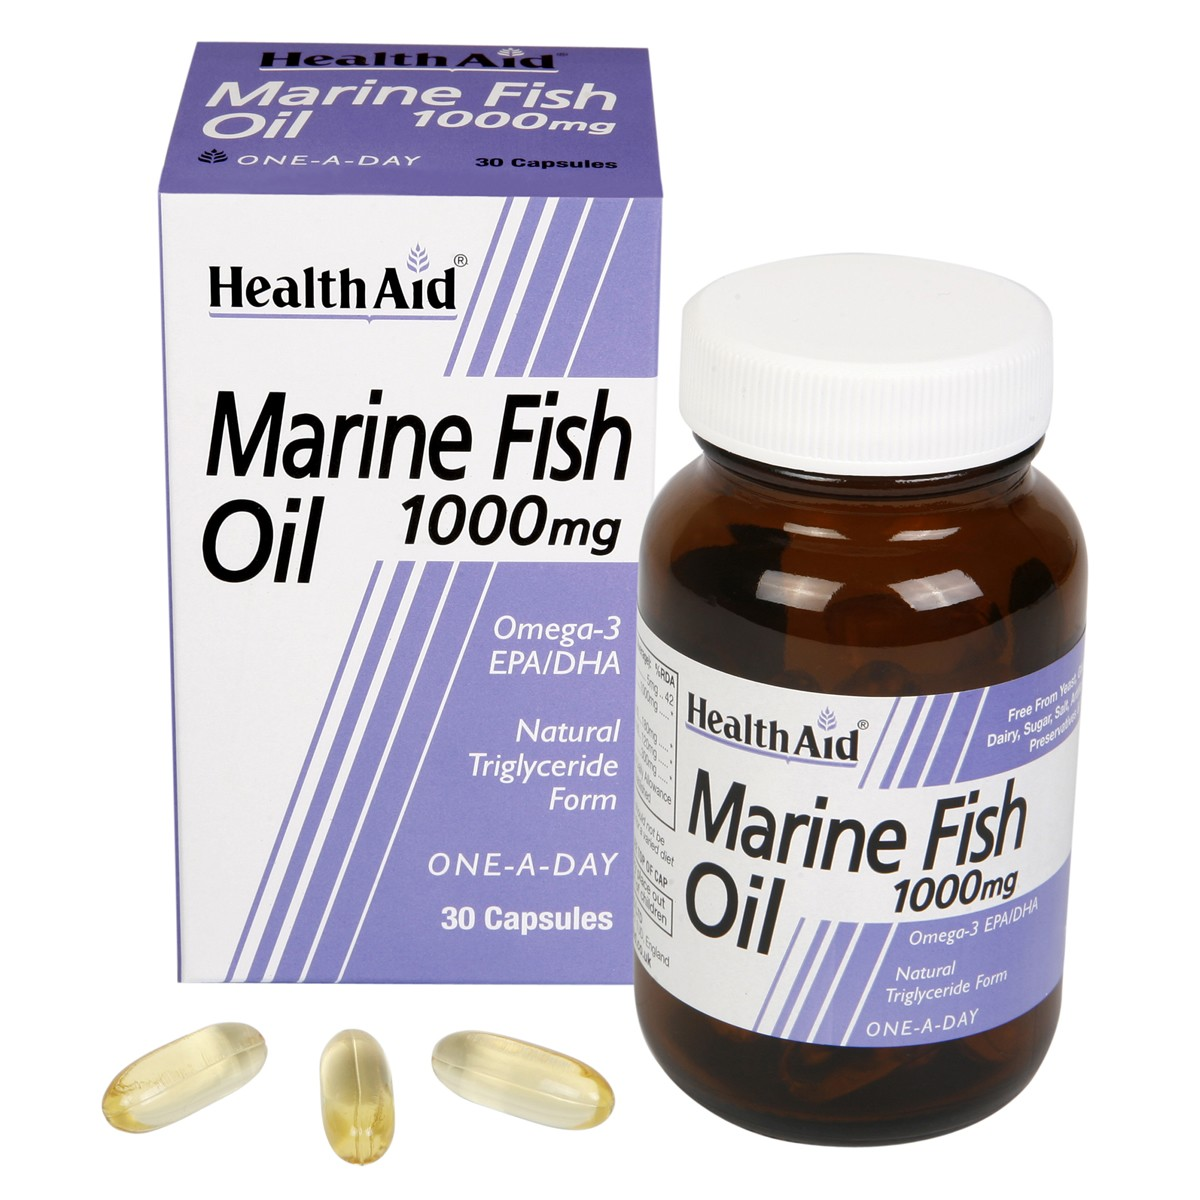 HealthAid Marine Fish Oil 1000mg Capsules